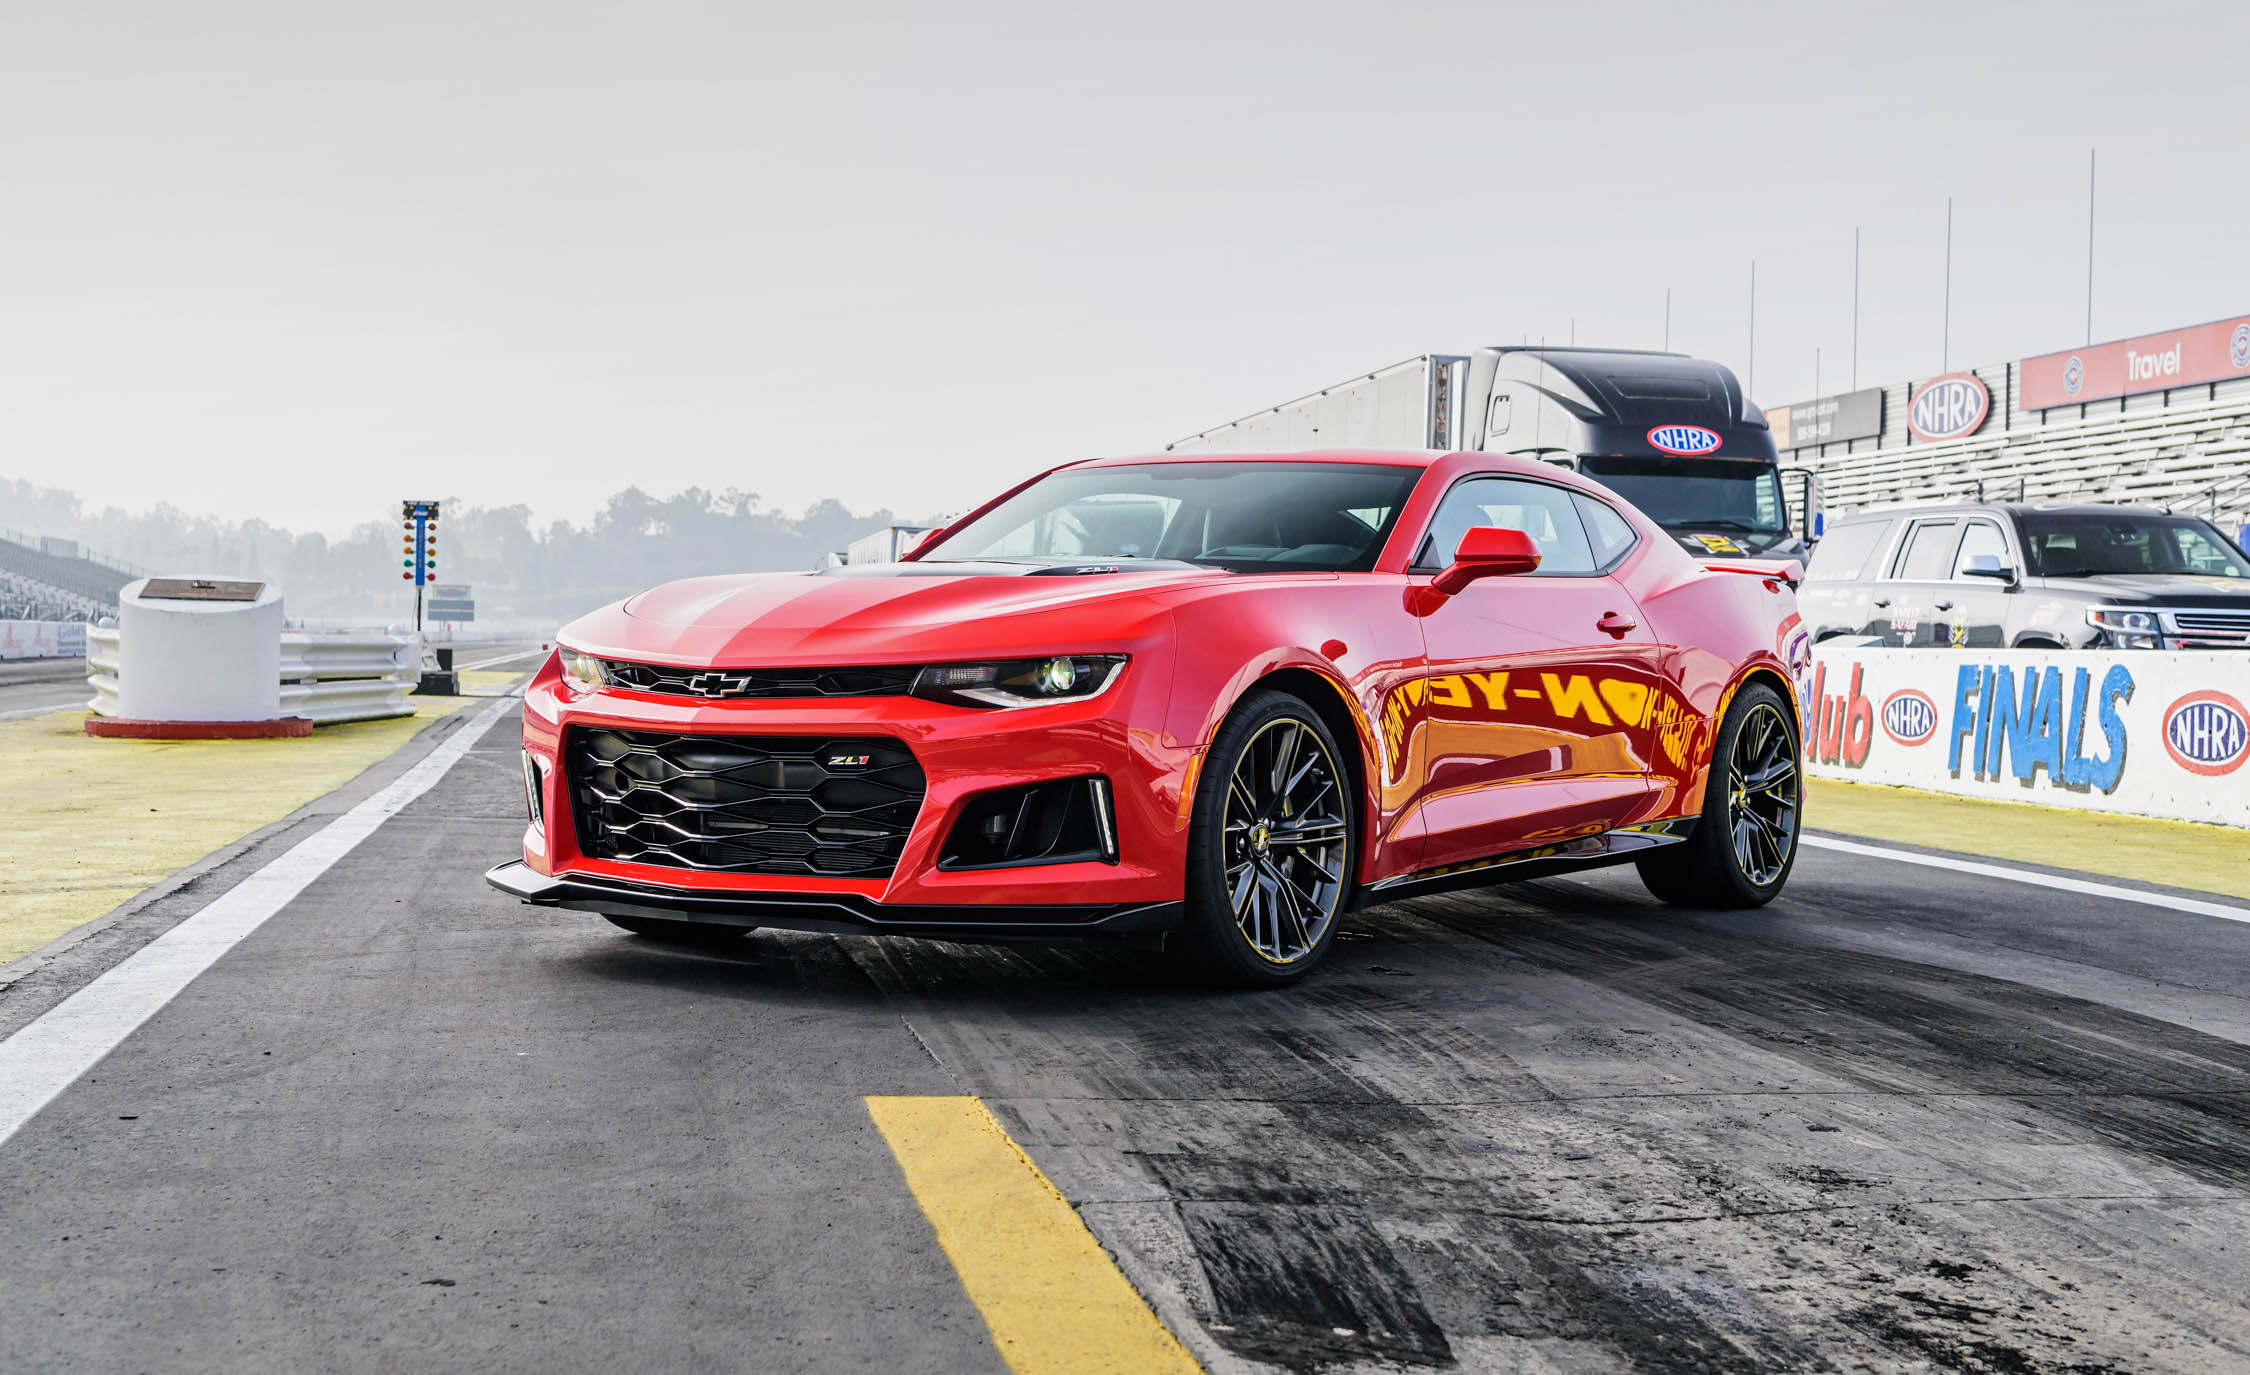 2017 chevrolet camaro zl1 convertible first drive an american bad ass goes topless rims and. Black Bedroom Furniture Sets. Home Design Ideas